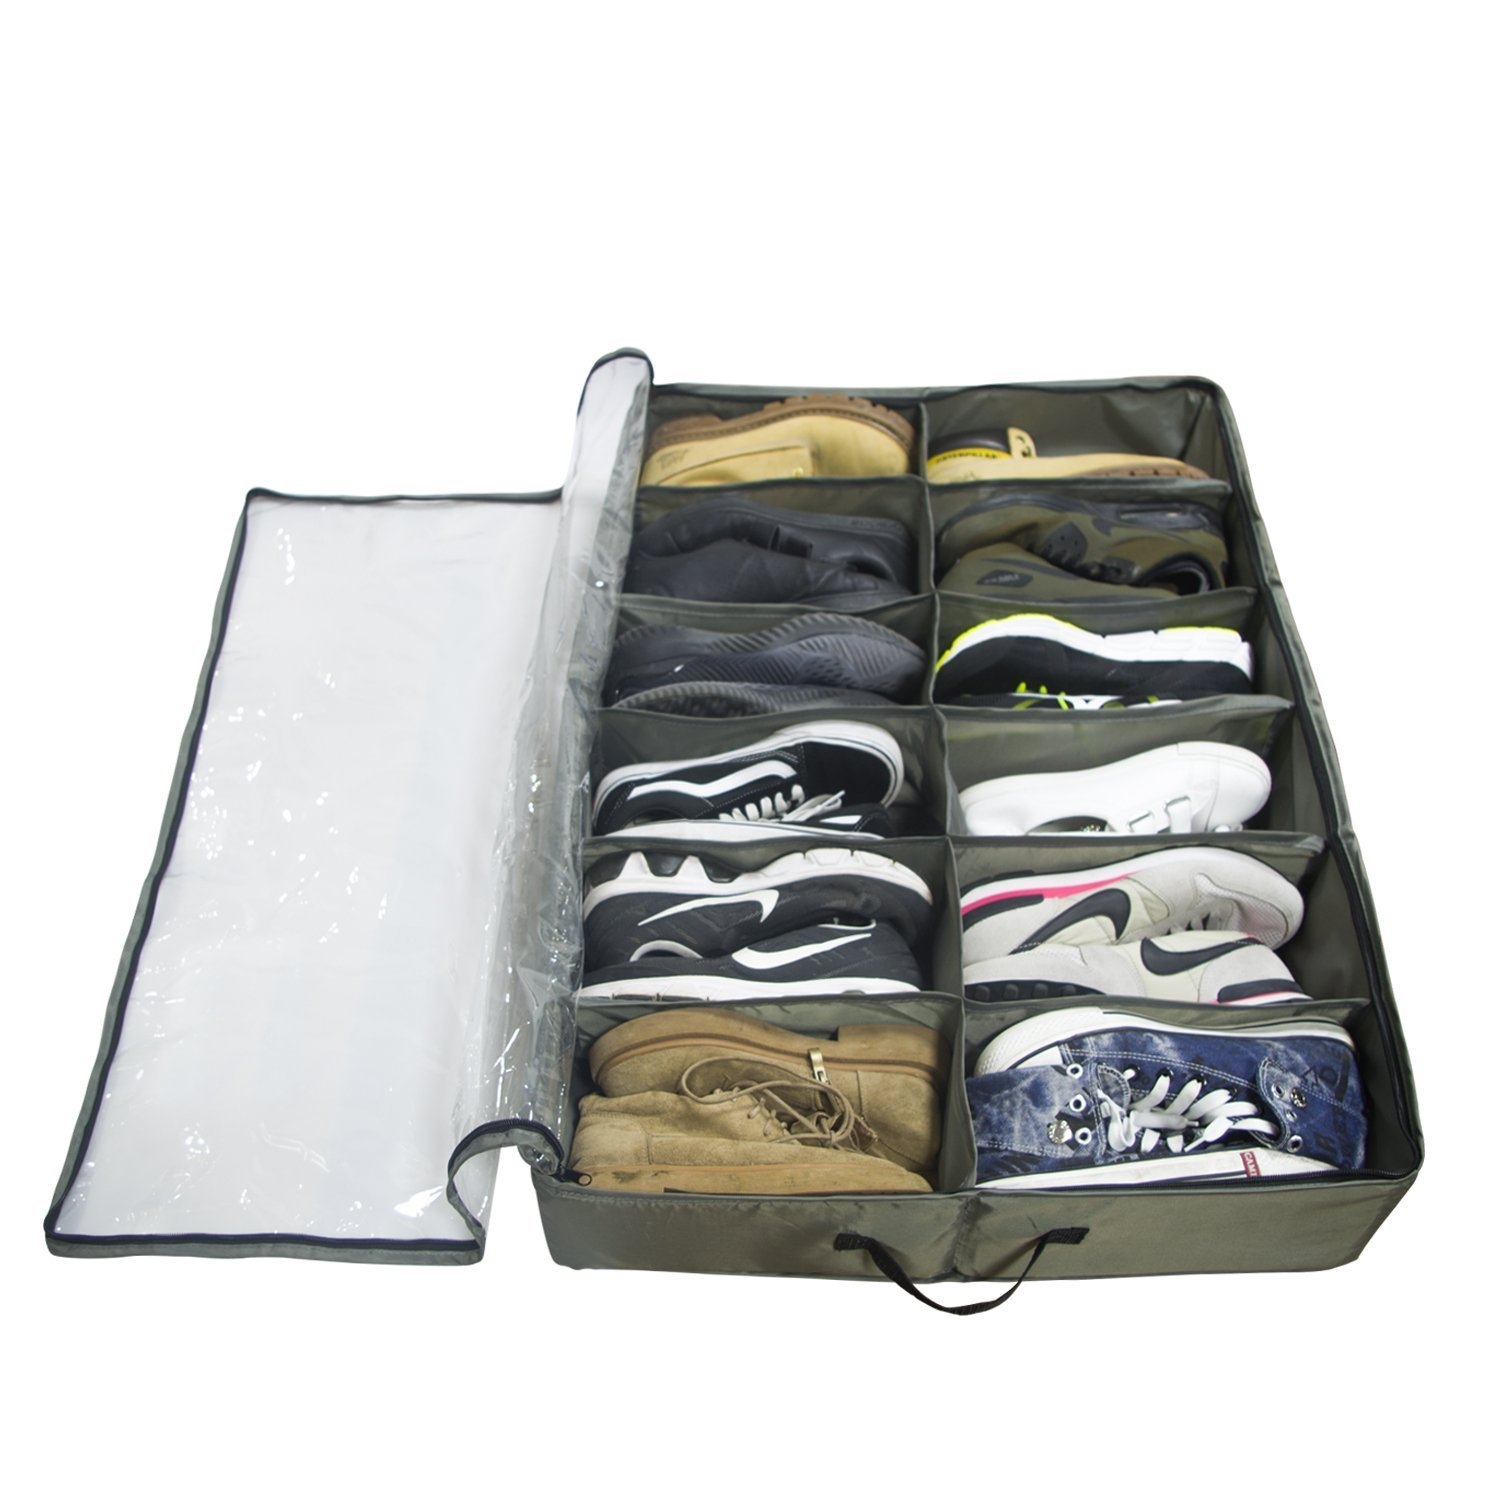 ACMETOP Built-in Structure Under Bed Shoe Storage, Space Saver Organizer, Sturdy & Breathable Materials, Solid Zippered, Dust-Free Design, Underbed Shoes Closet Storage Solution (8 Cell)